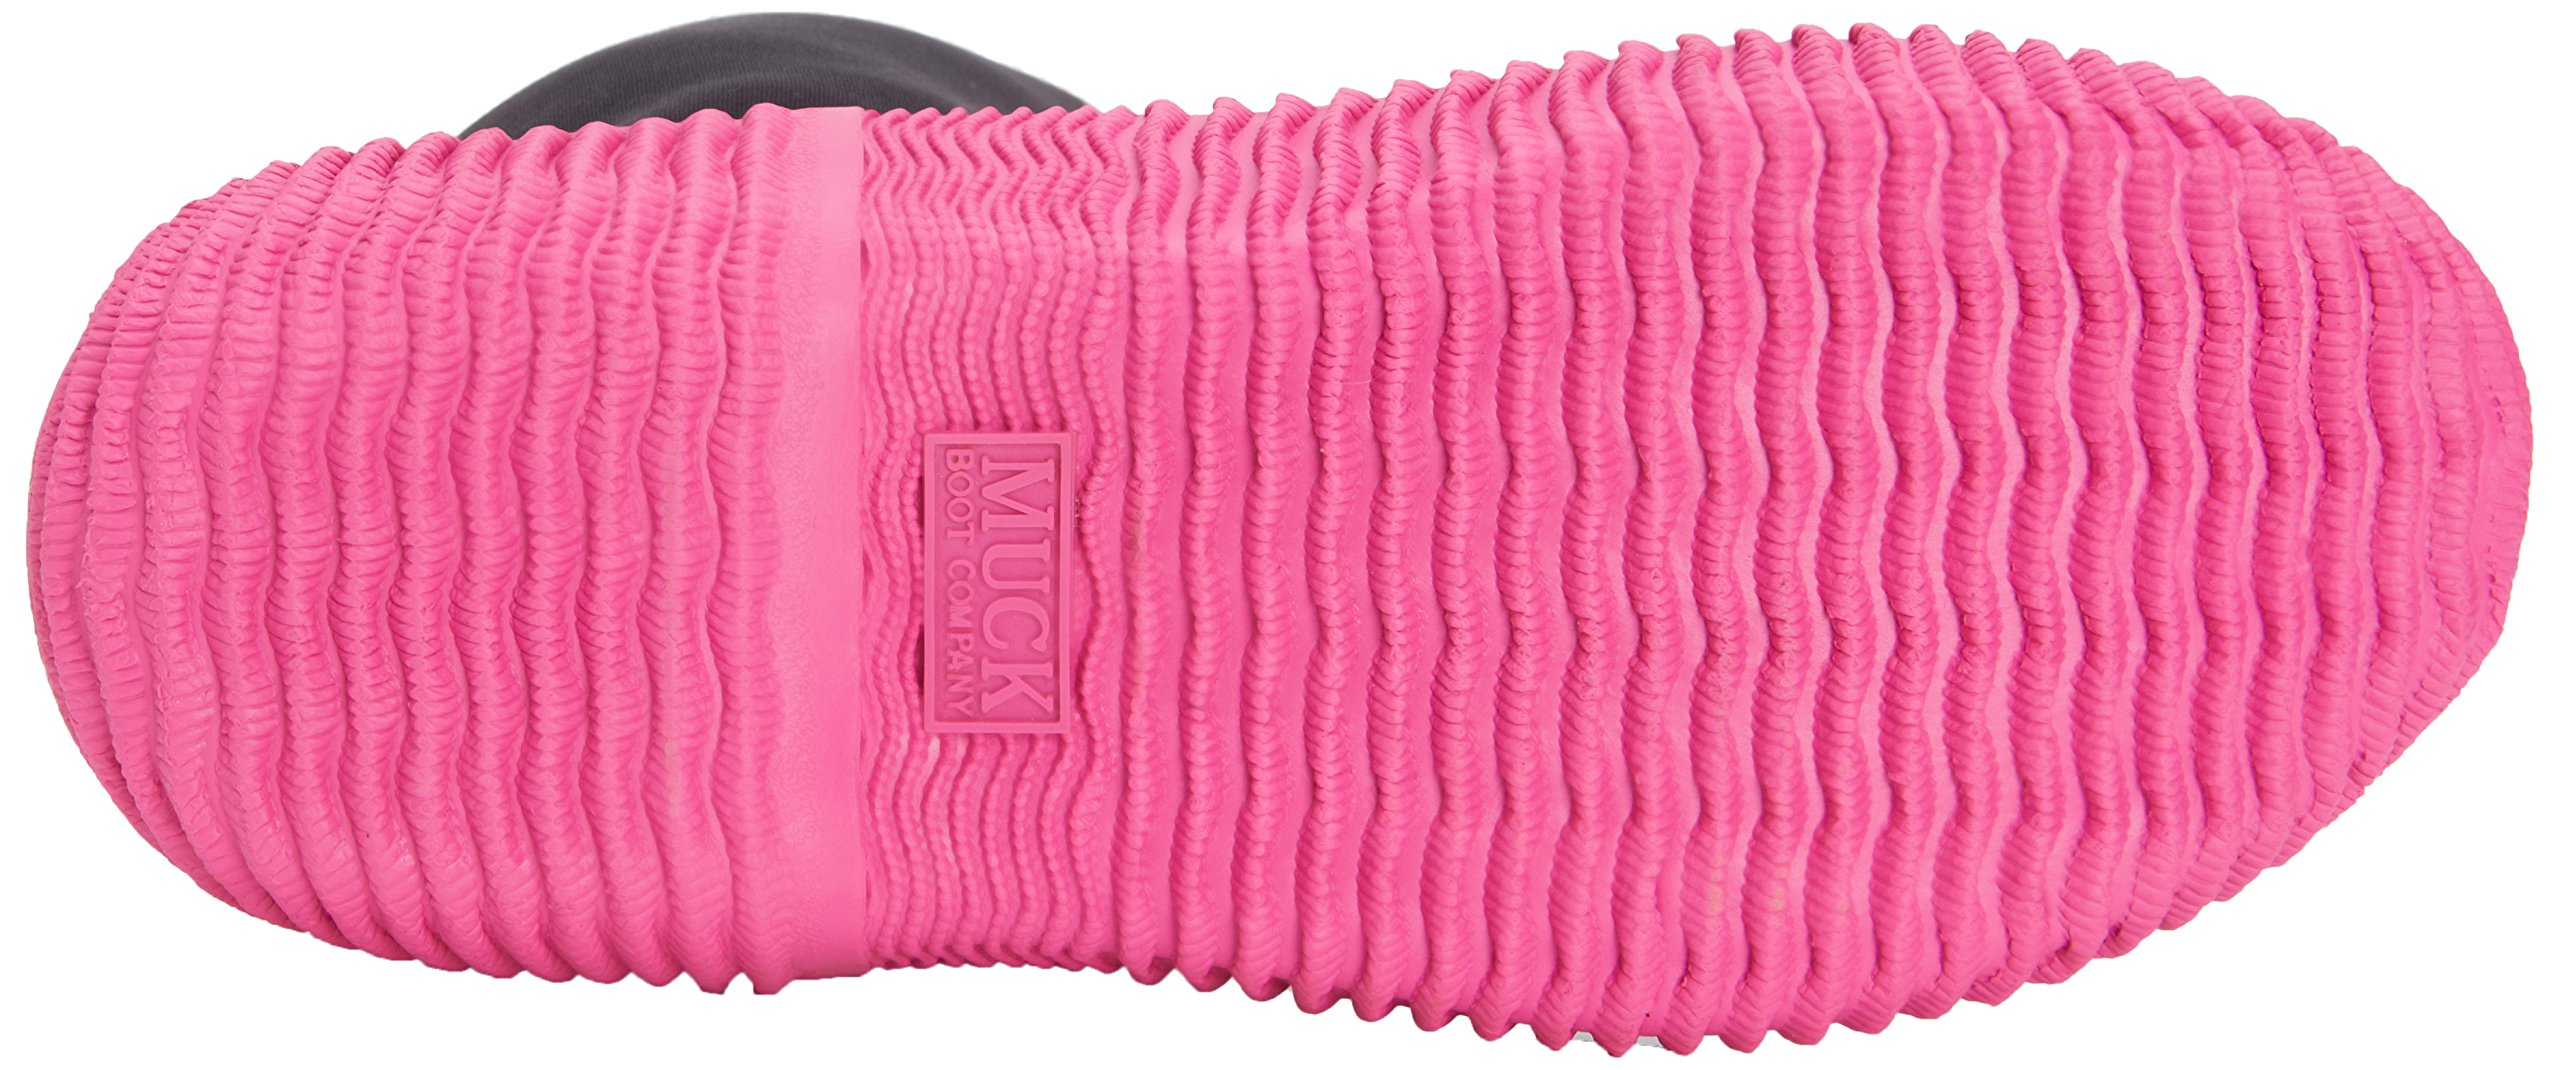 Muck Boot Women's Hale Snow Boot, Black/Hot Pink, 8 M US by Muck Boot (Image #4)